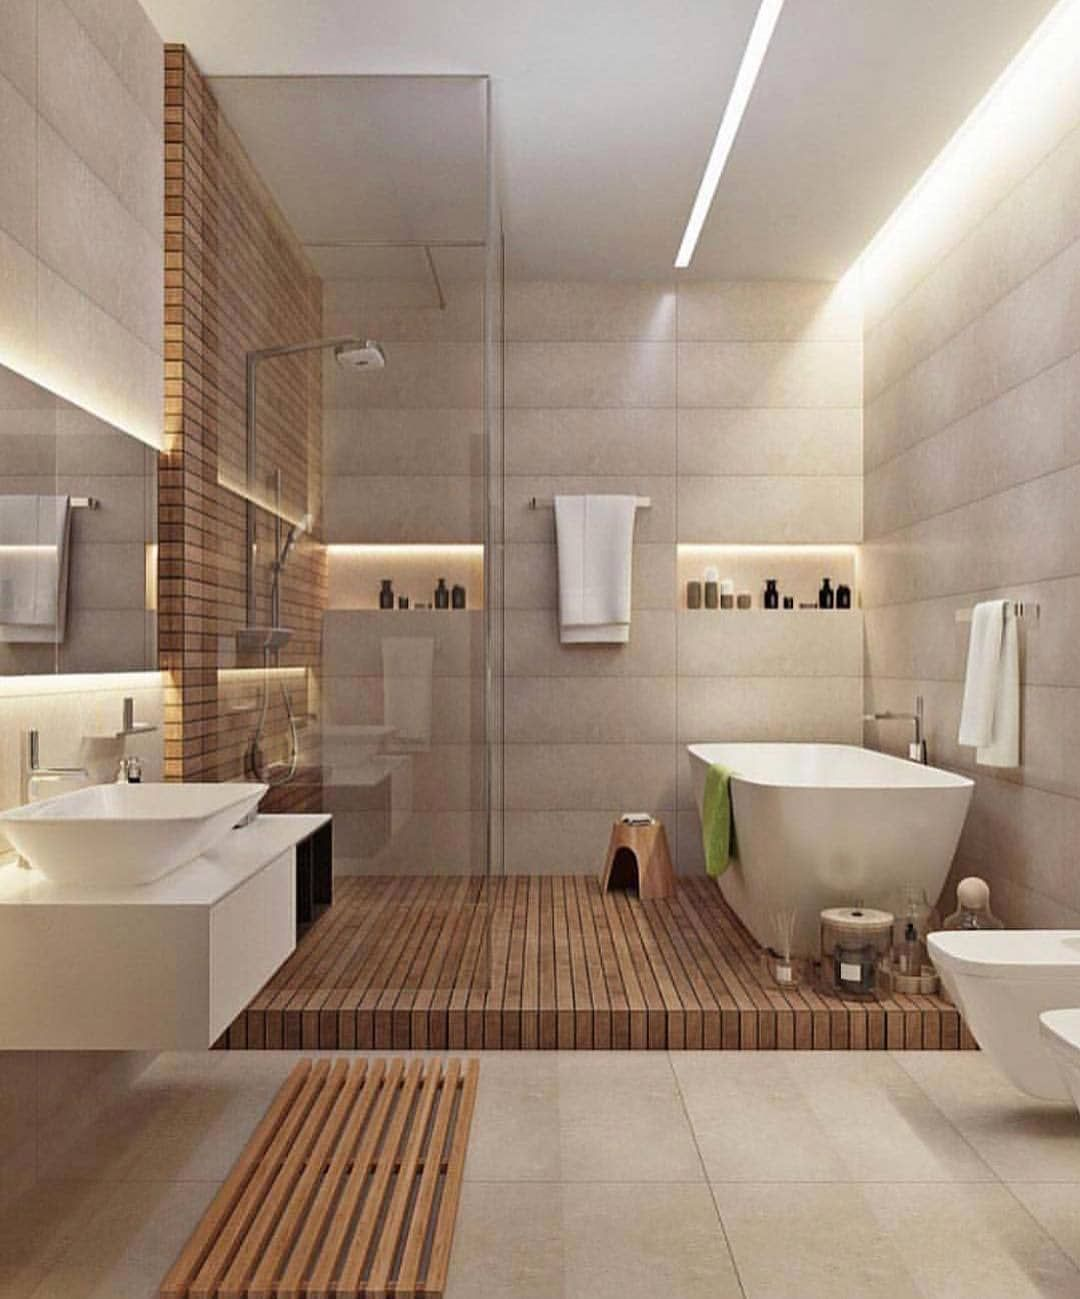 Badezimmer Accessoires Dm What Do You Think About This Bathroom Design Follow